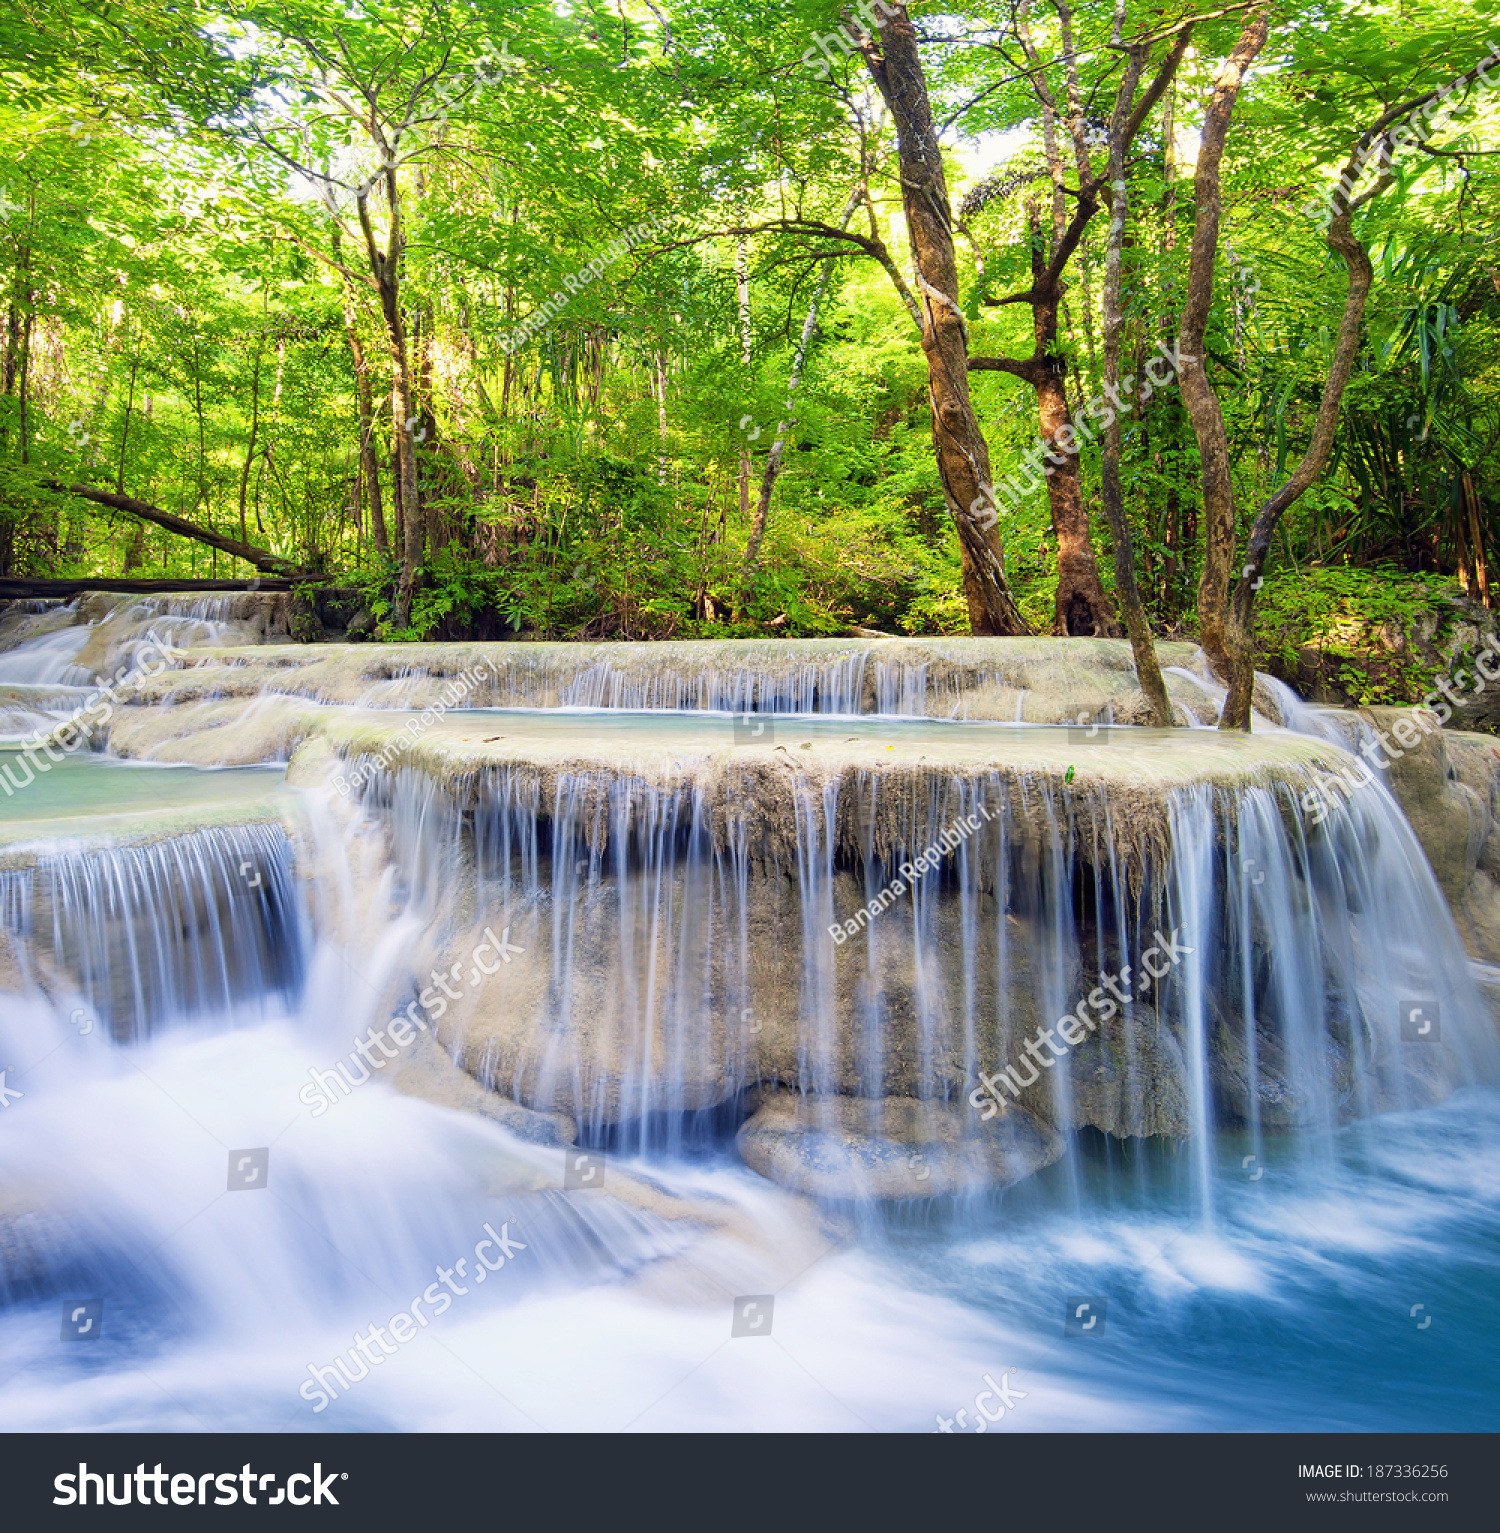 Waterfall Landscape Background Beautiful Nature Outdoor Nature Stock Image 187336256